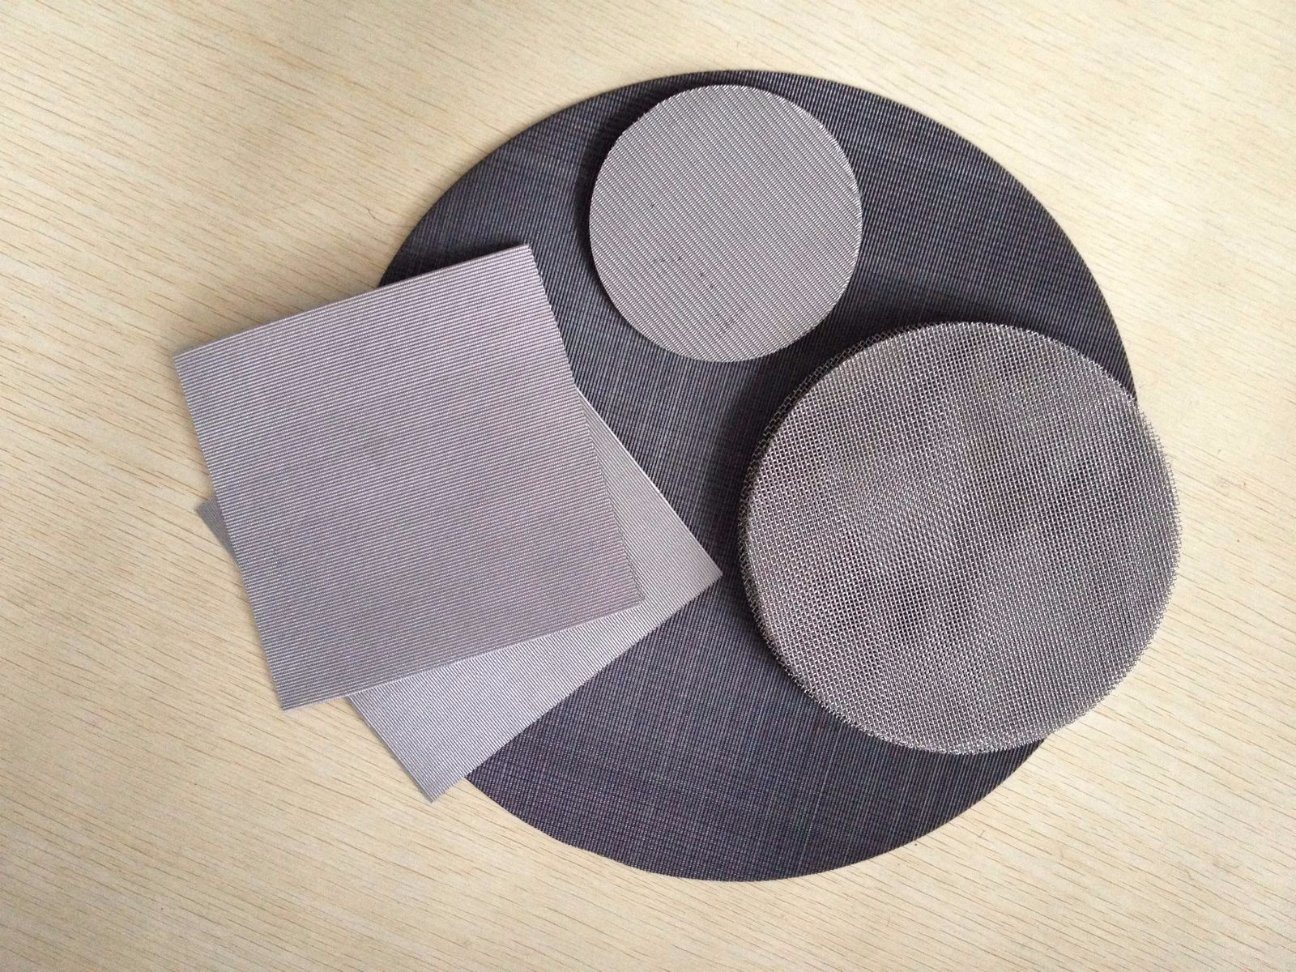 304 316 20 200 Mesh Stainless Steel Round Filter Screen